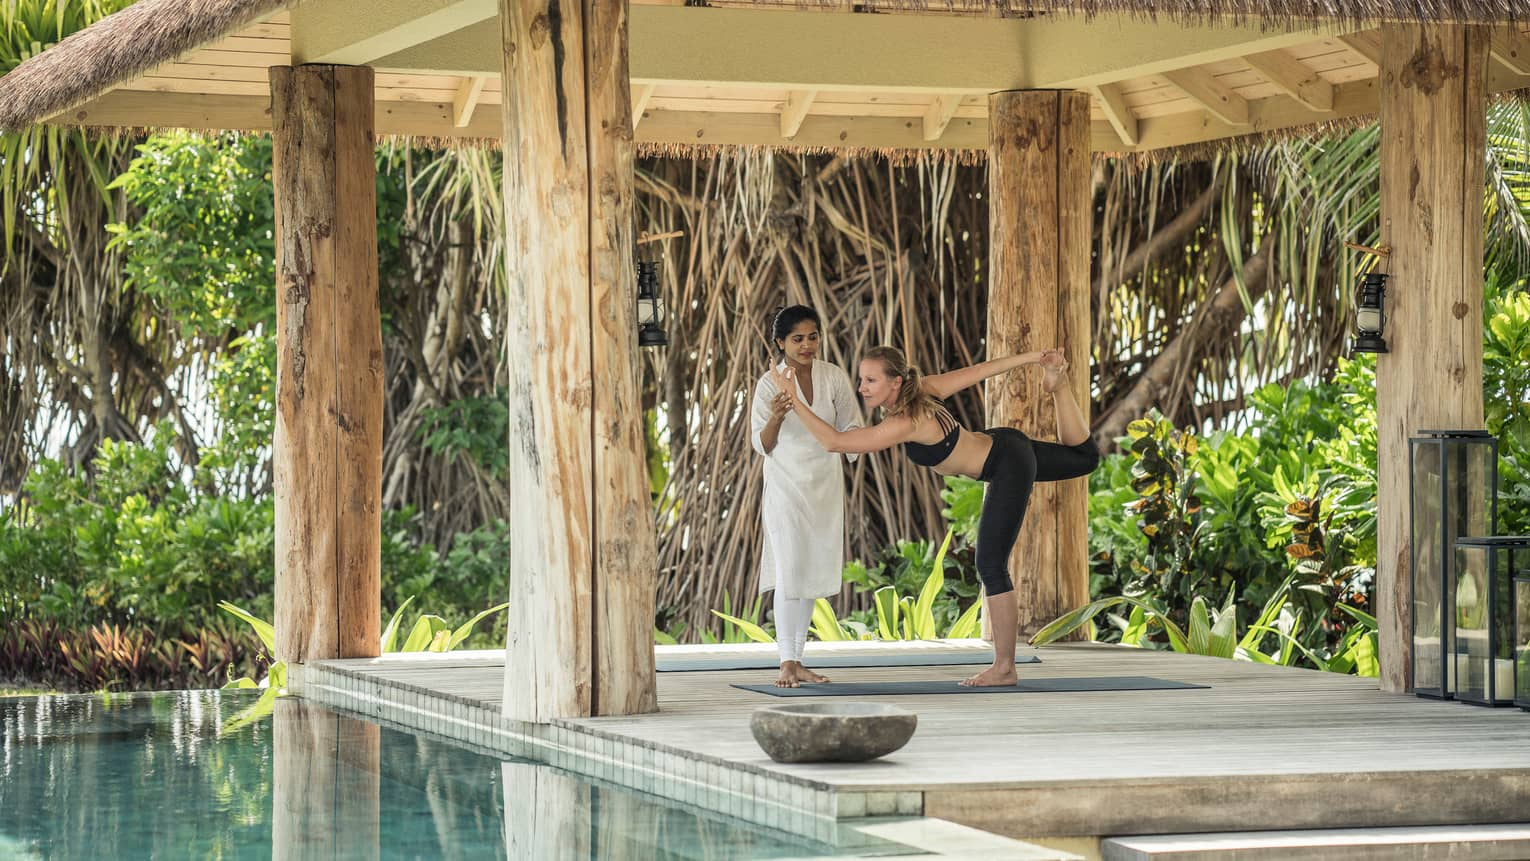 Yogi assists woman with yoga pose under thatched roof gazebo by plunge pool